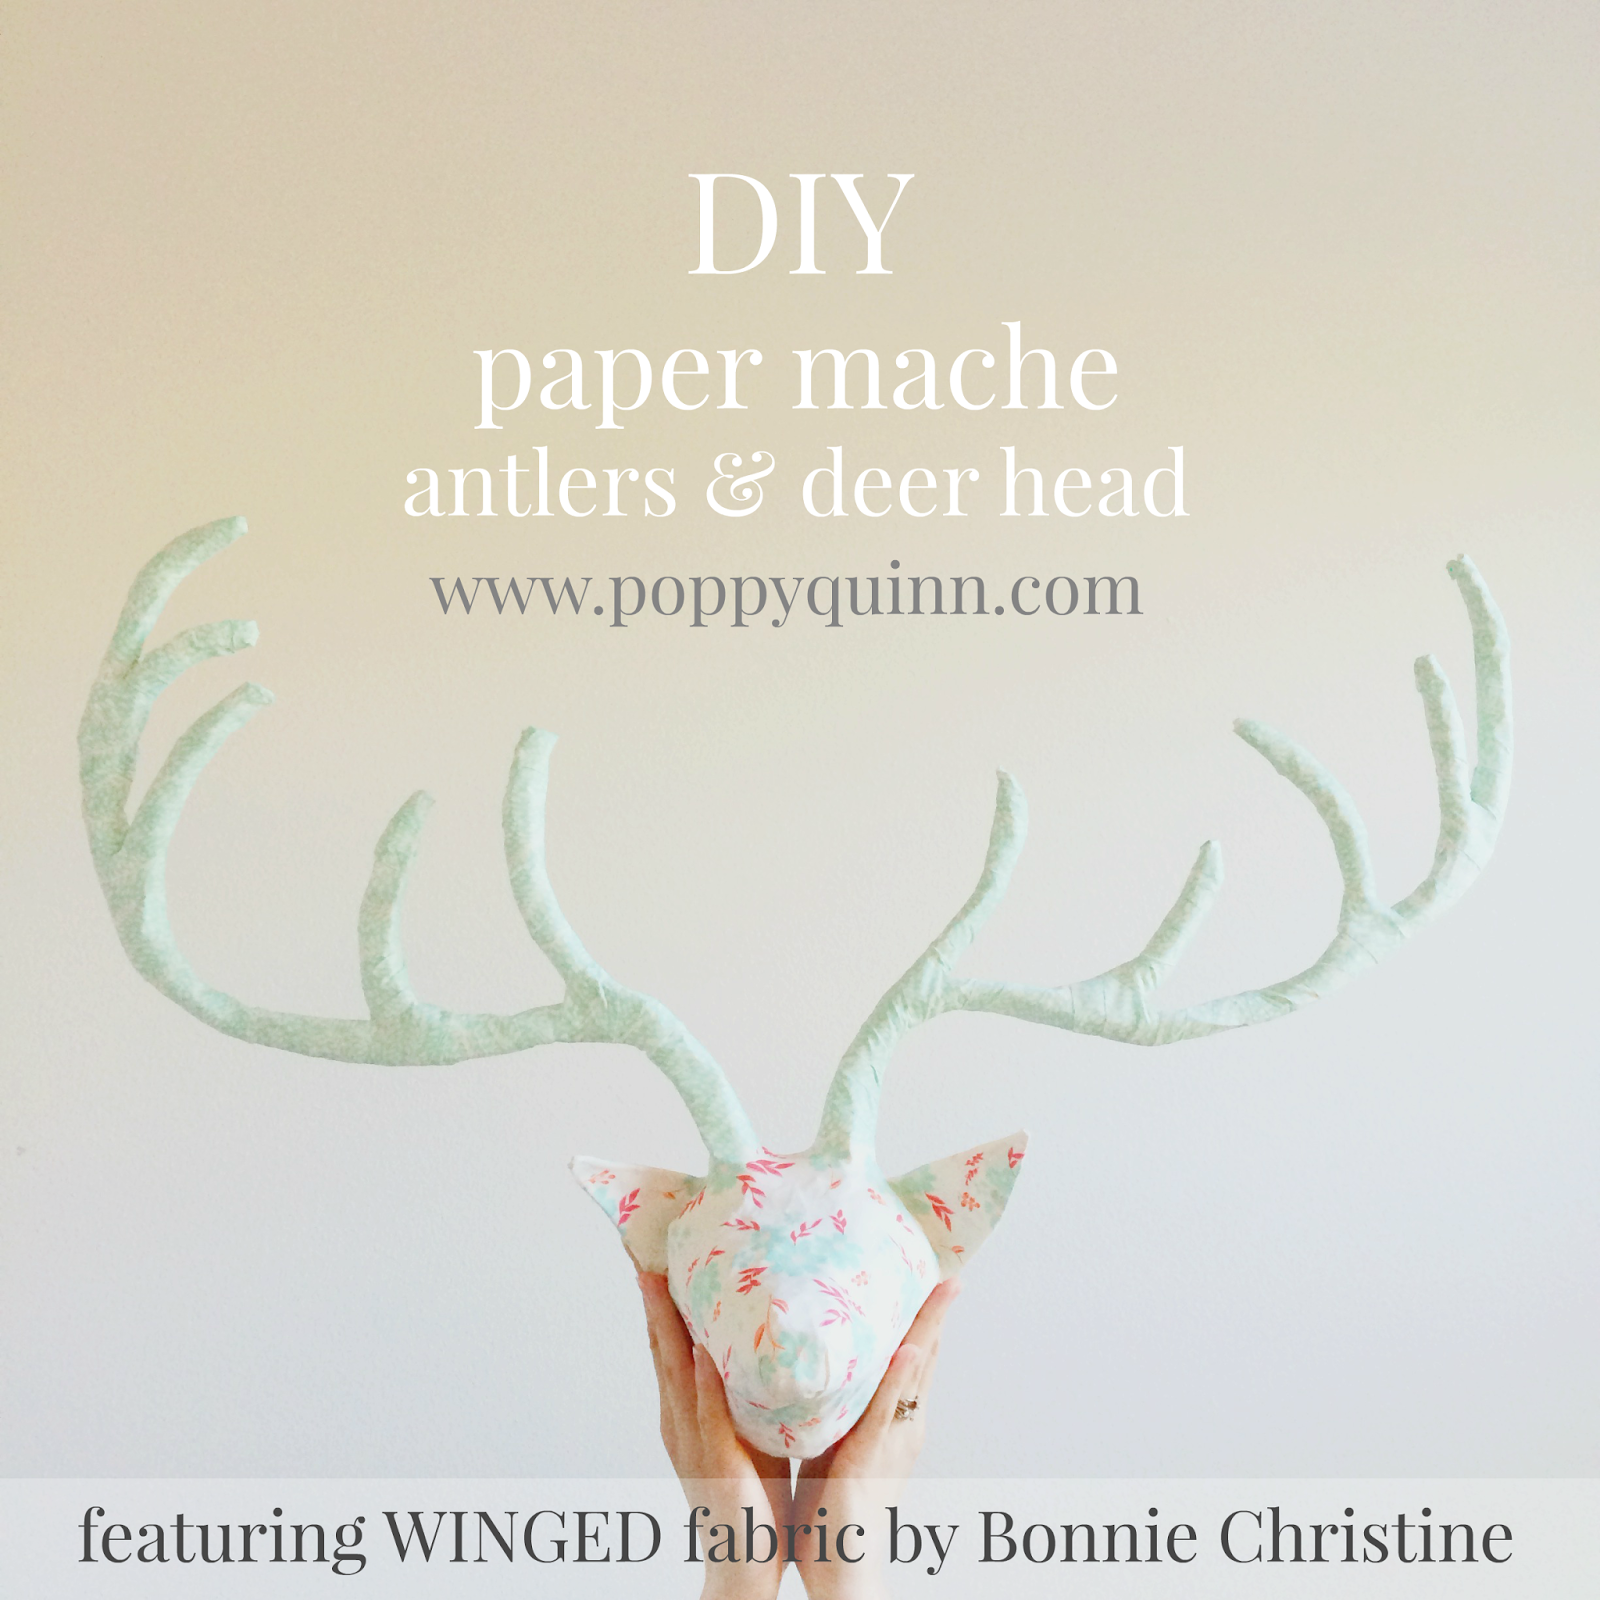 projects ideas dear head. DIY how to make paper m ch  antlers and deer head by poppyquinn mache winged blog tour